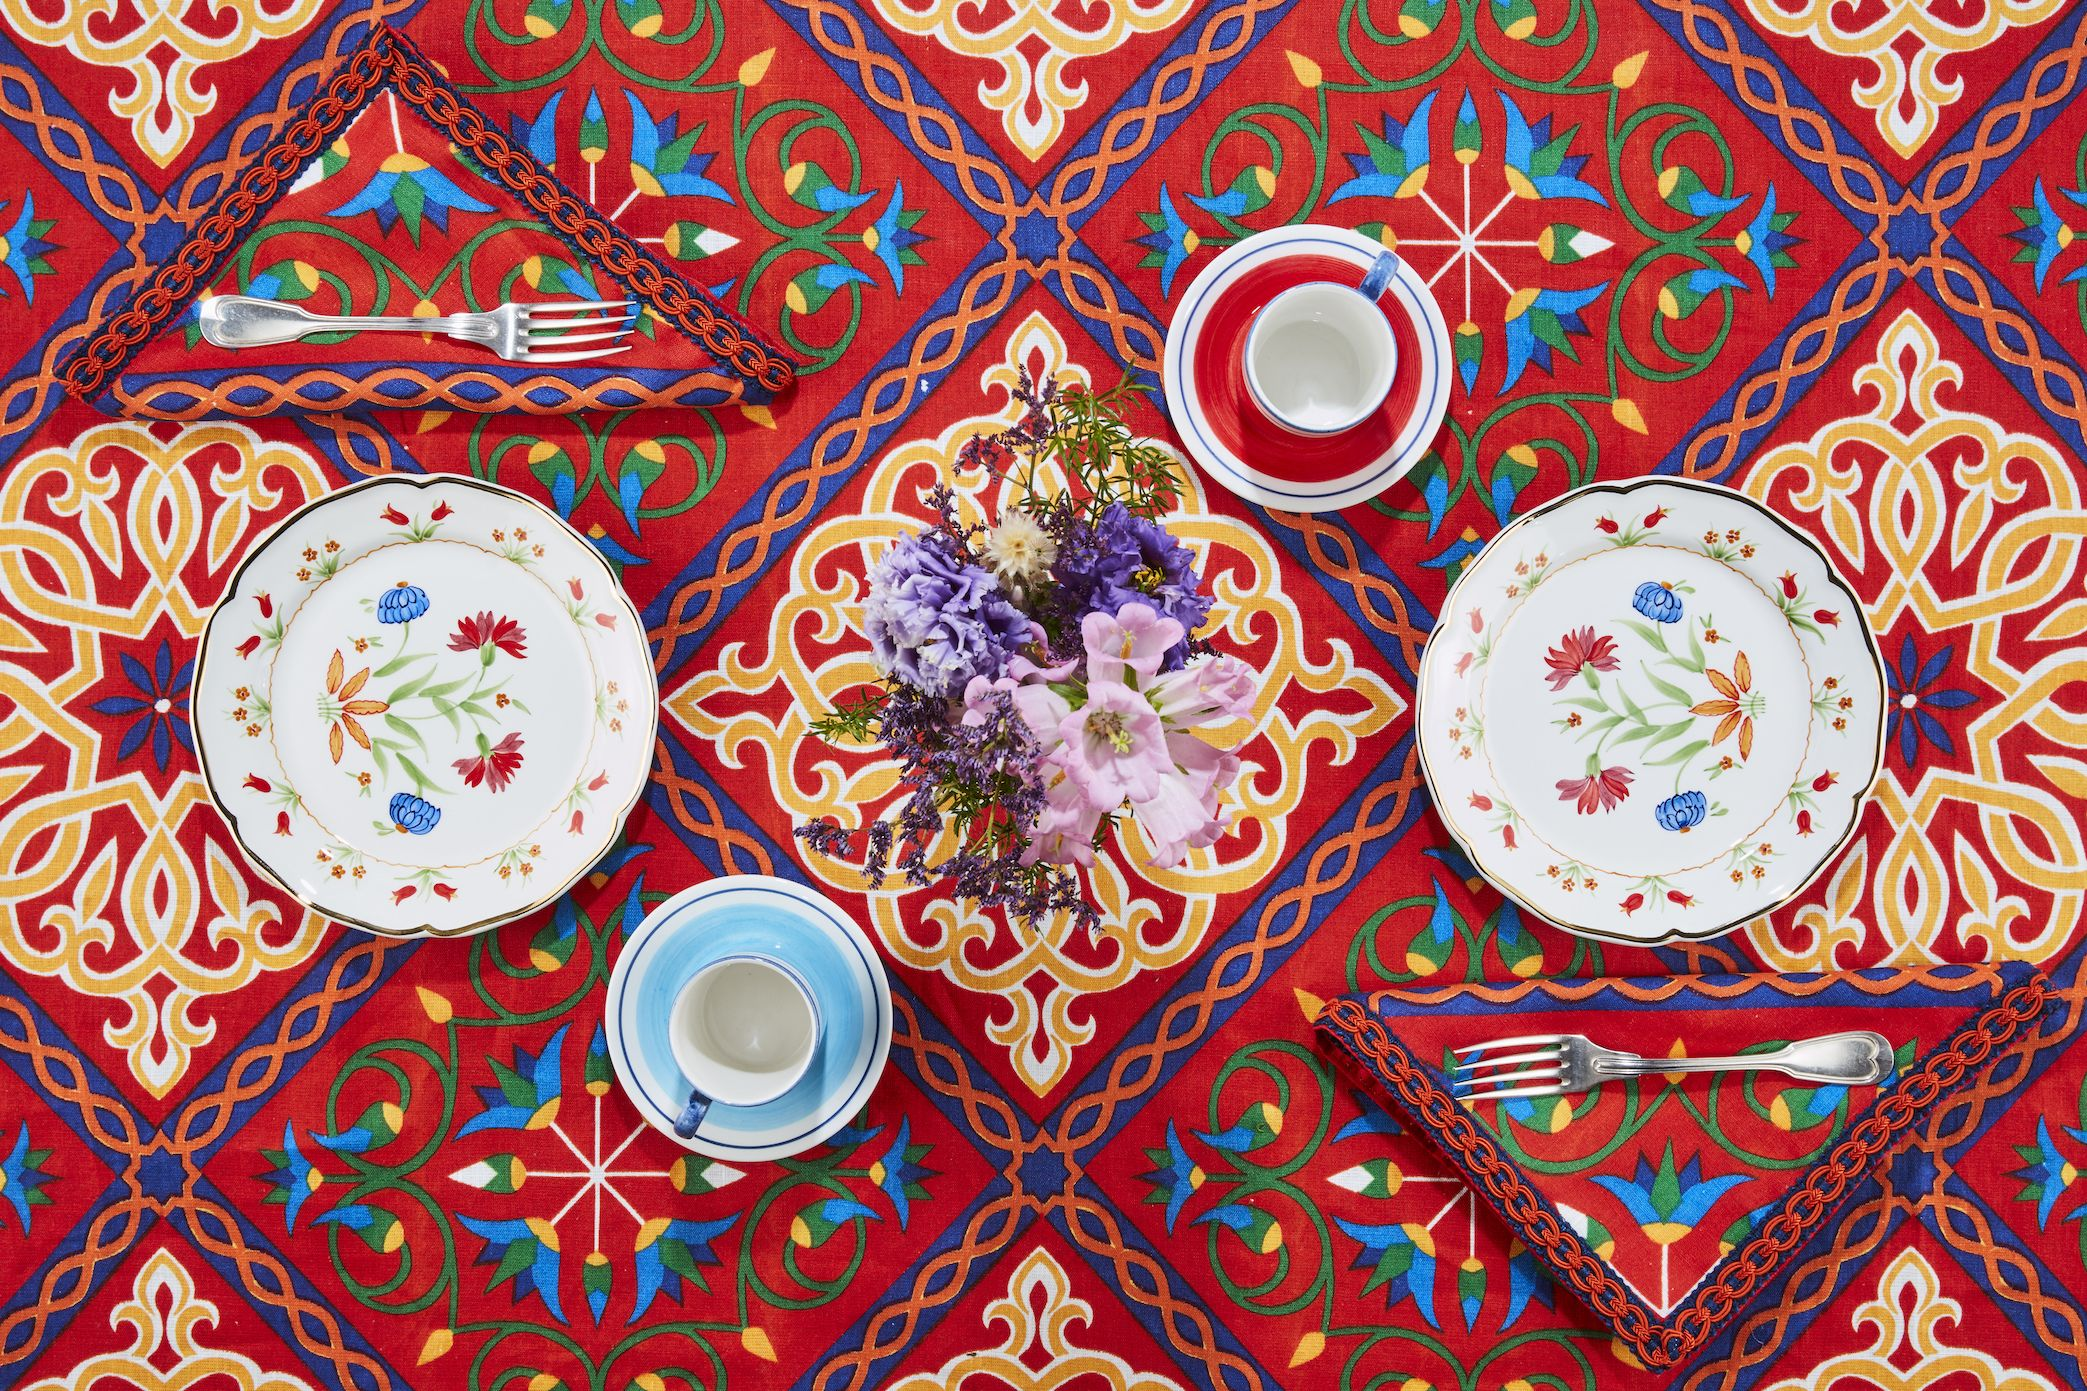 Carolina Herrera and Cabana Just Released a Sophisticated, Pattern-Punched Tabletop Collection